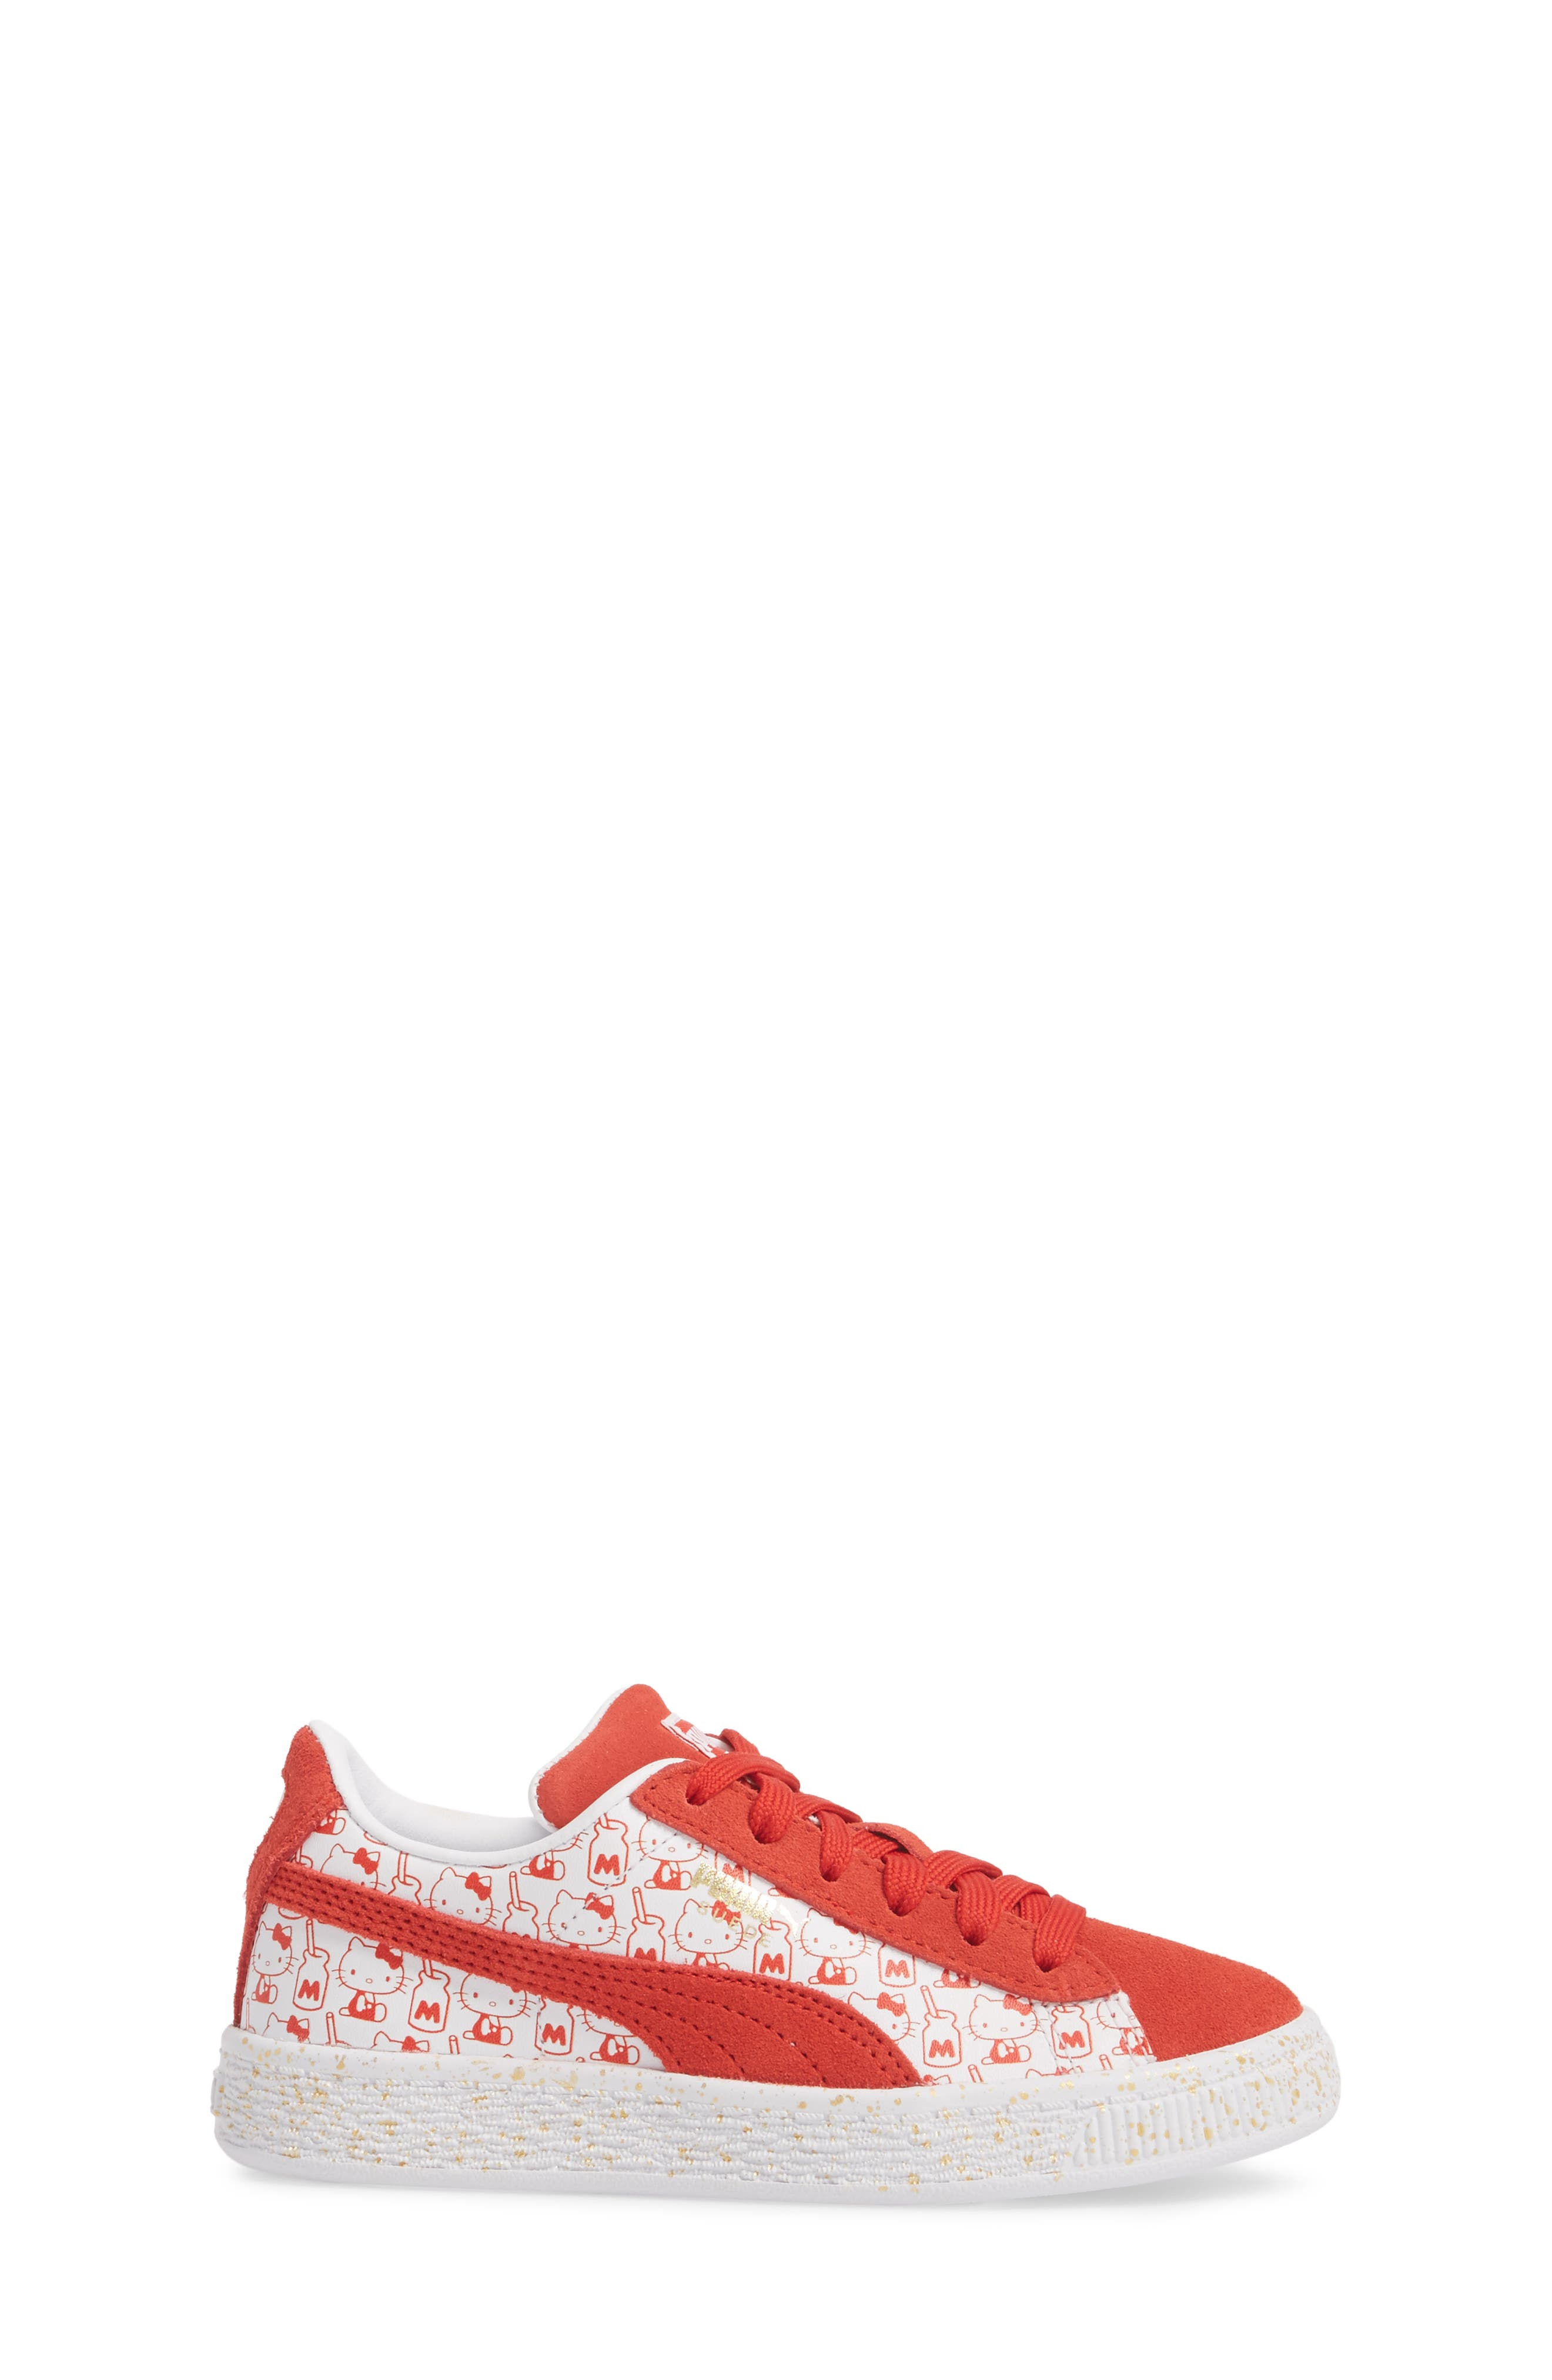 x Hello Kitty Suede Classic Sneaker,                             Alternate thumbnail 3, color,                             600